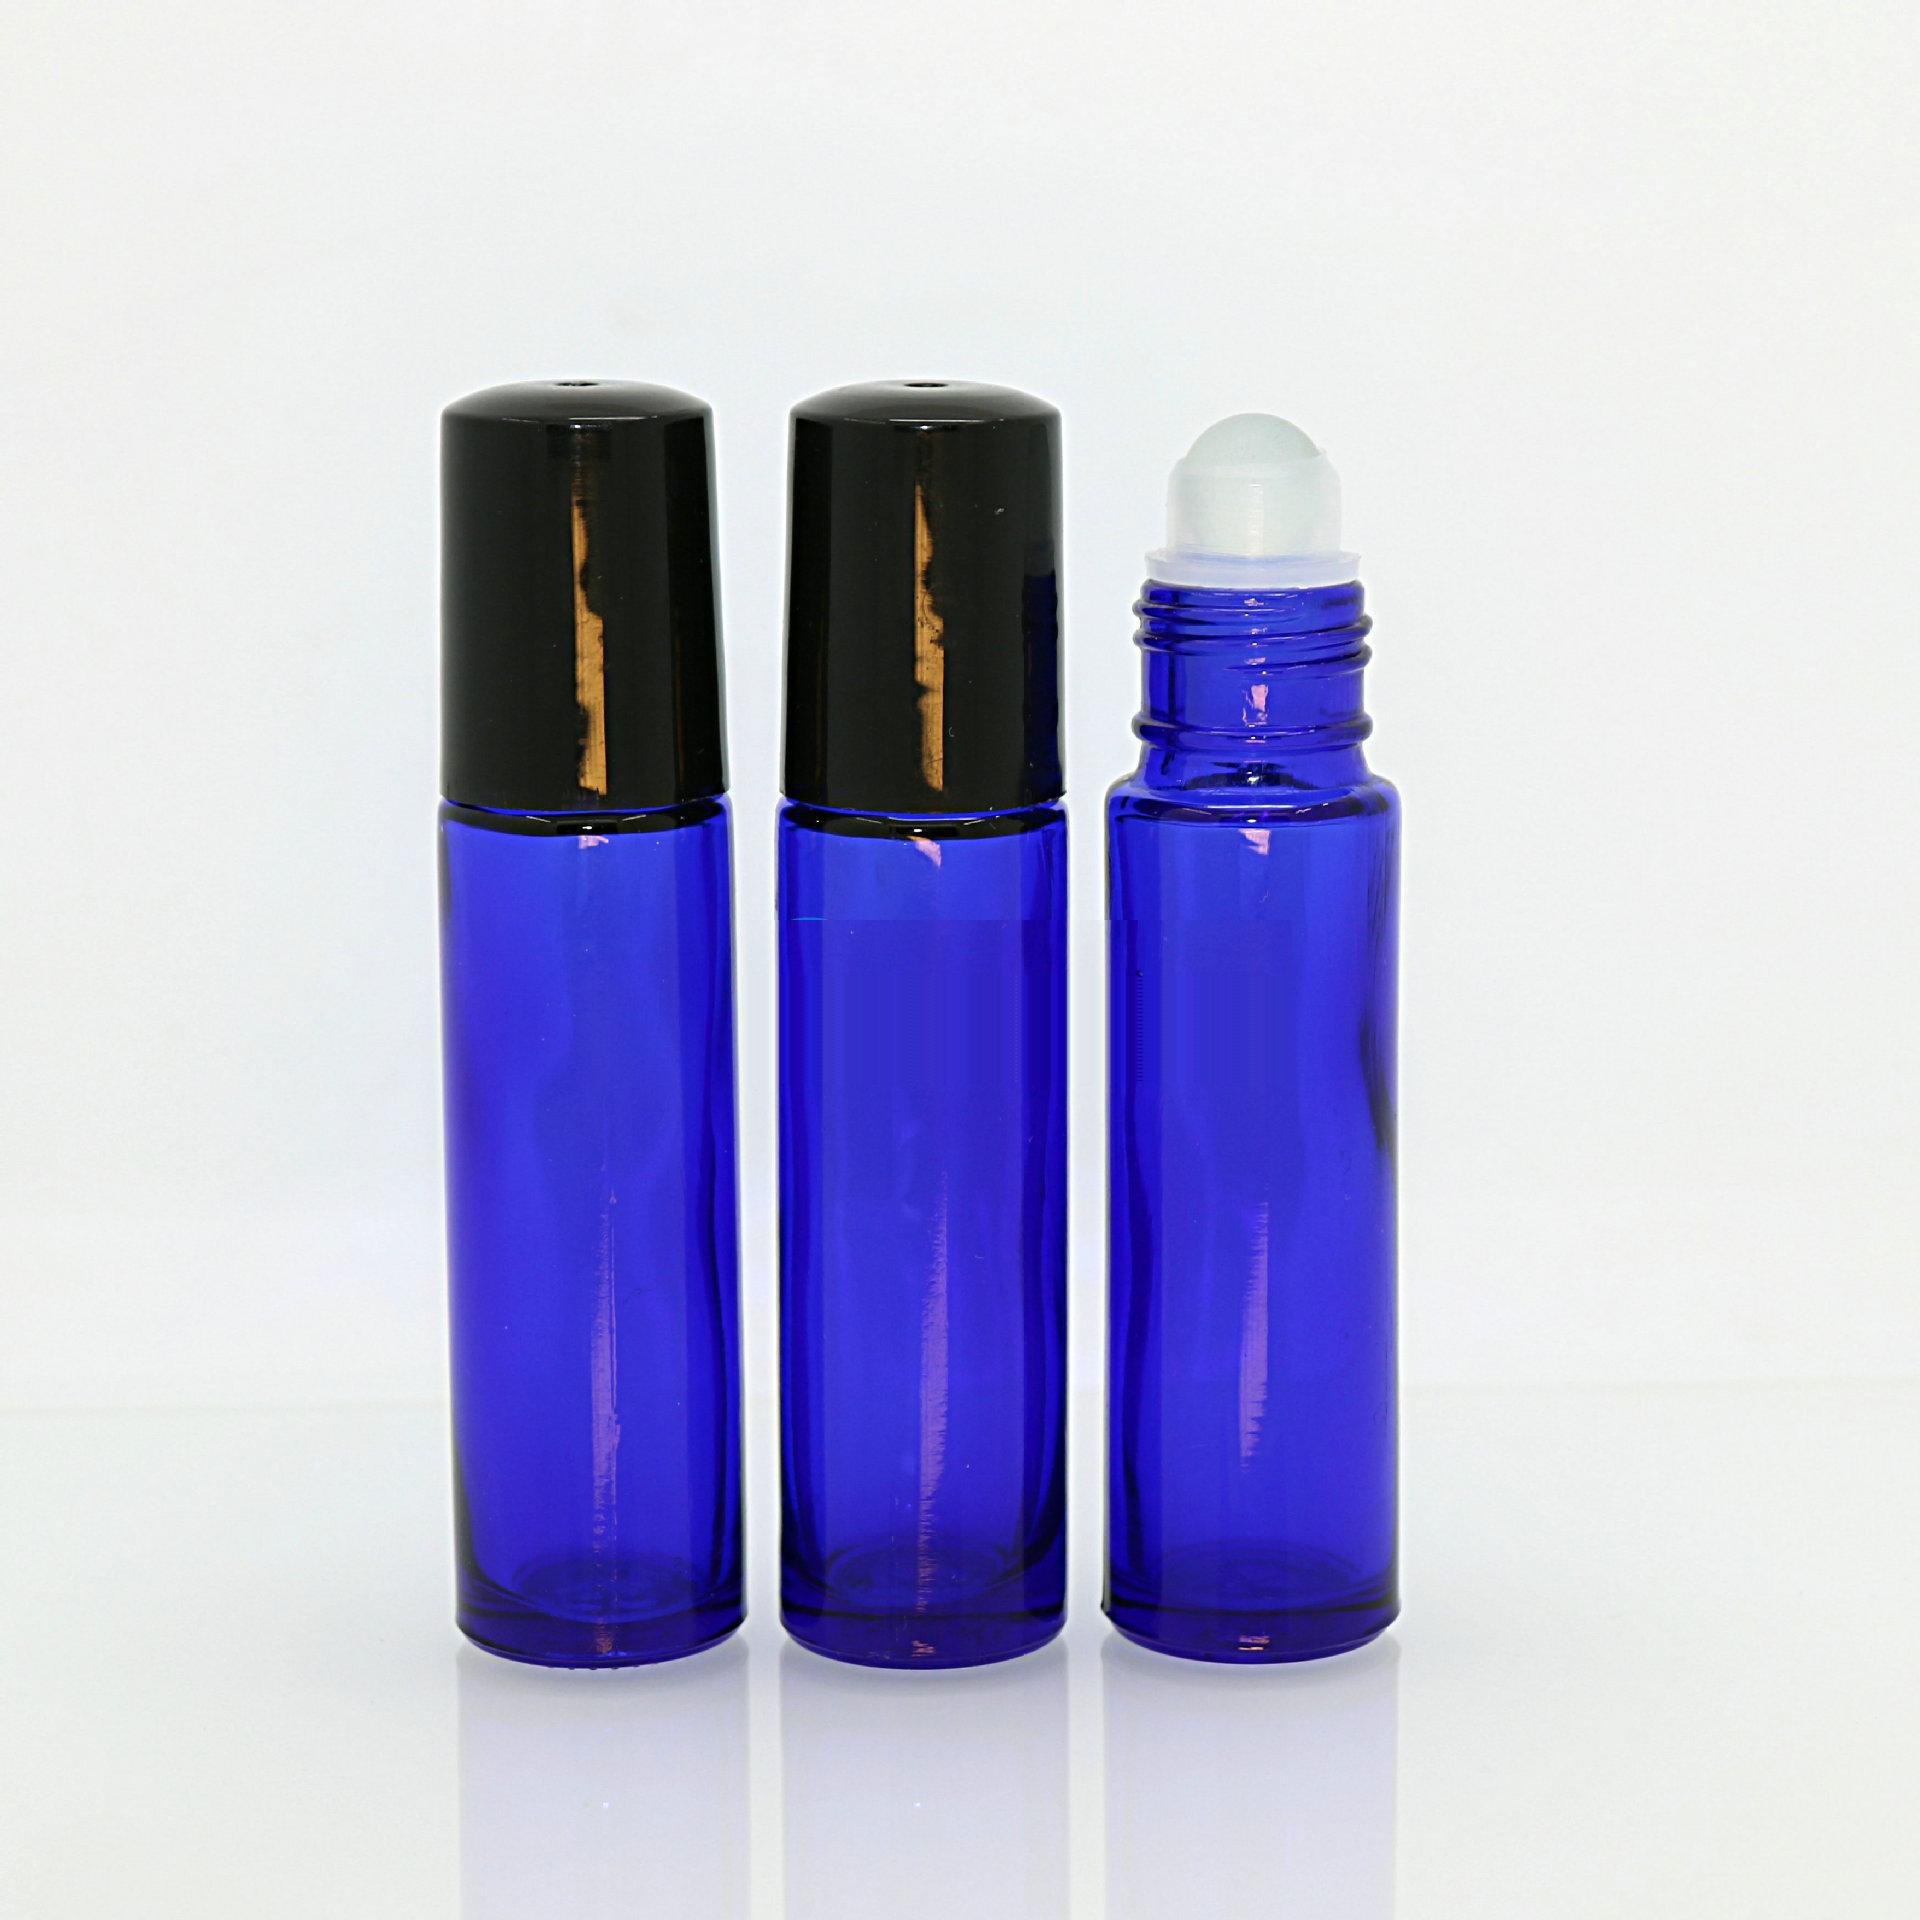 4 4ml Blue Glass Roll-on Bottle with Plastic Ball /& Caps